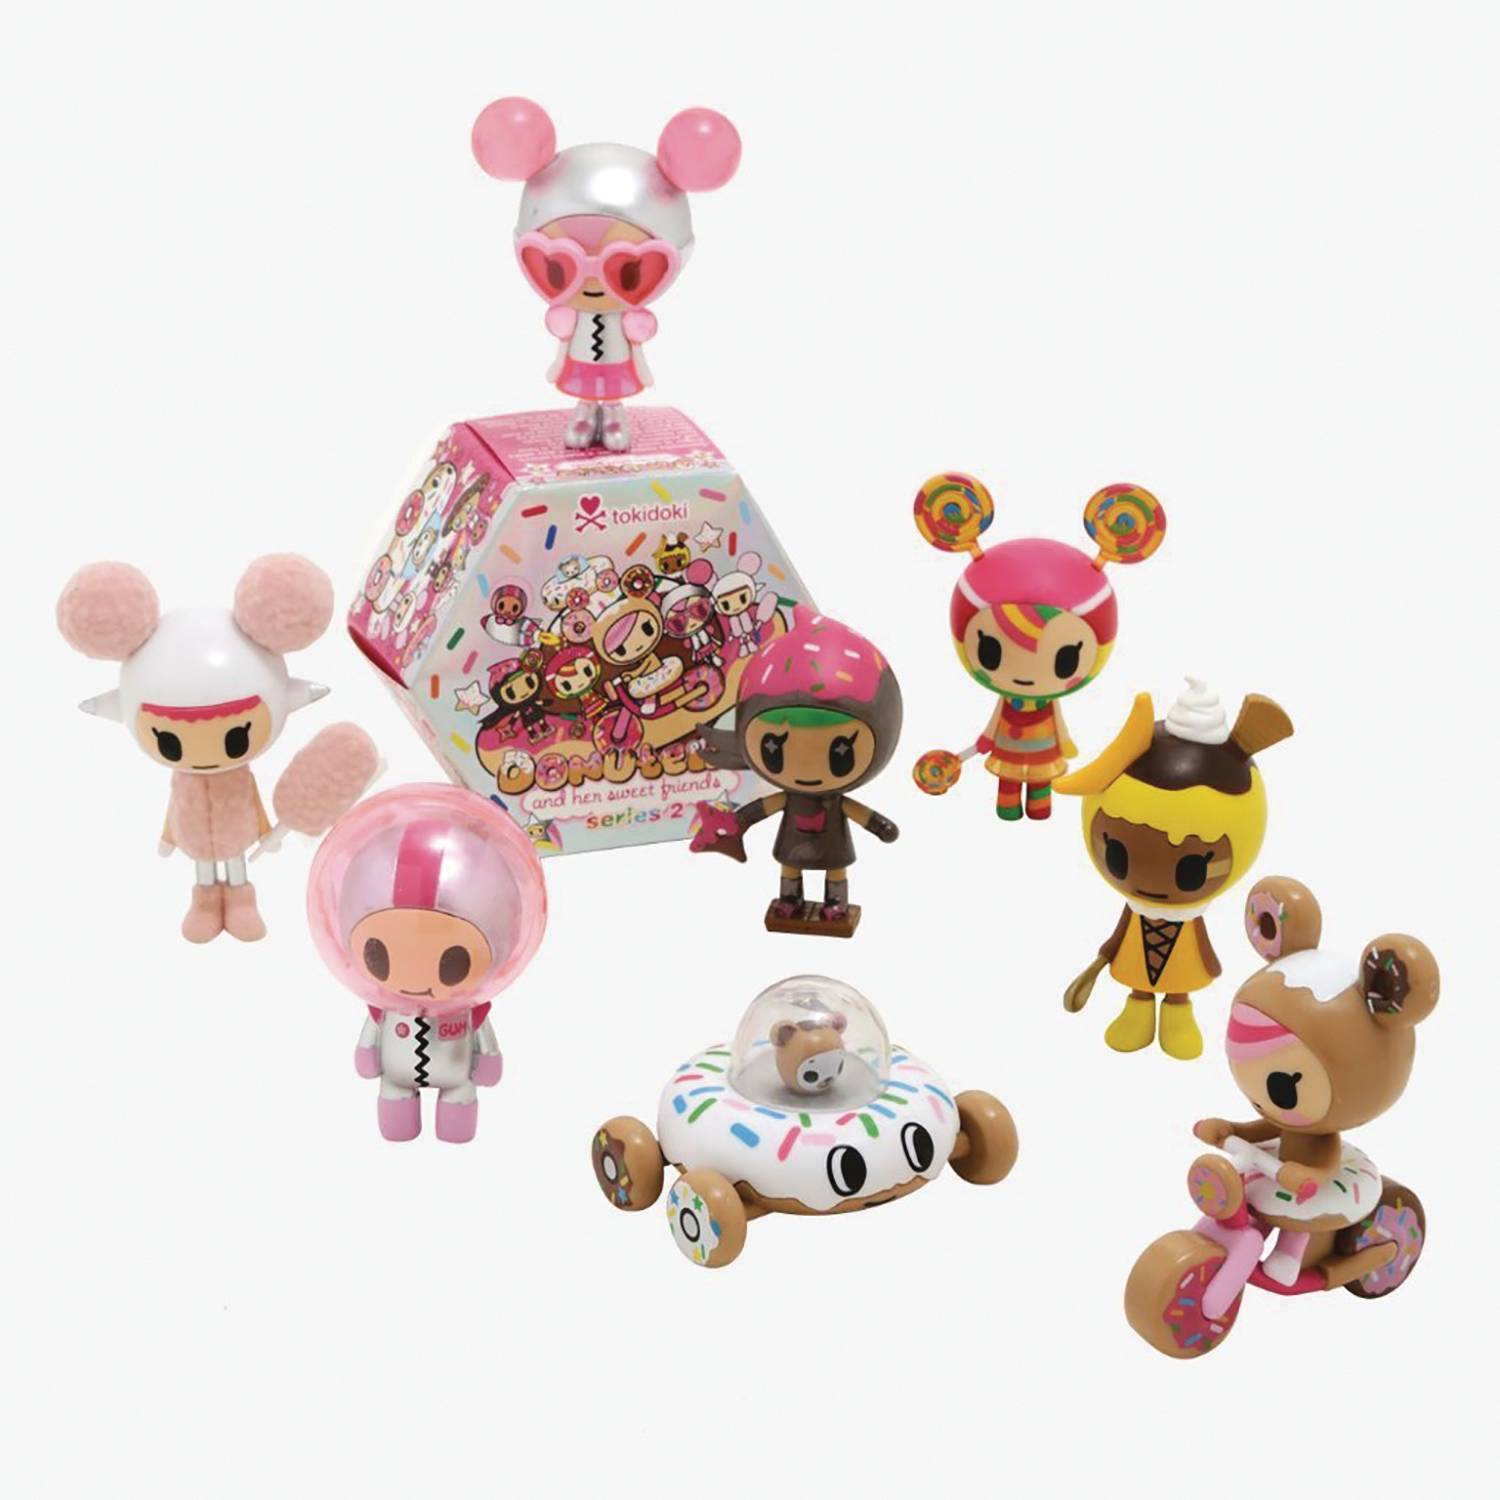 DONUTELLA AND HER SWEET FRIENDS SERIES 3 12PC BMB DS